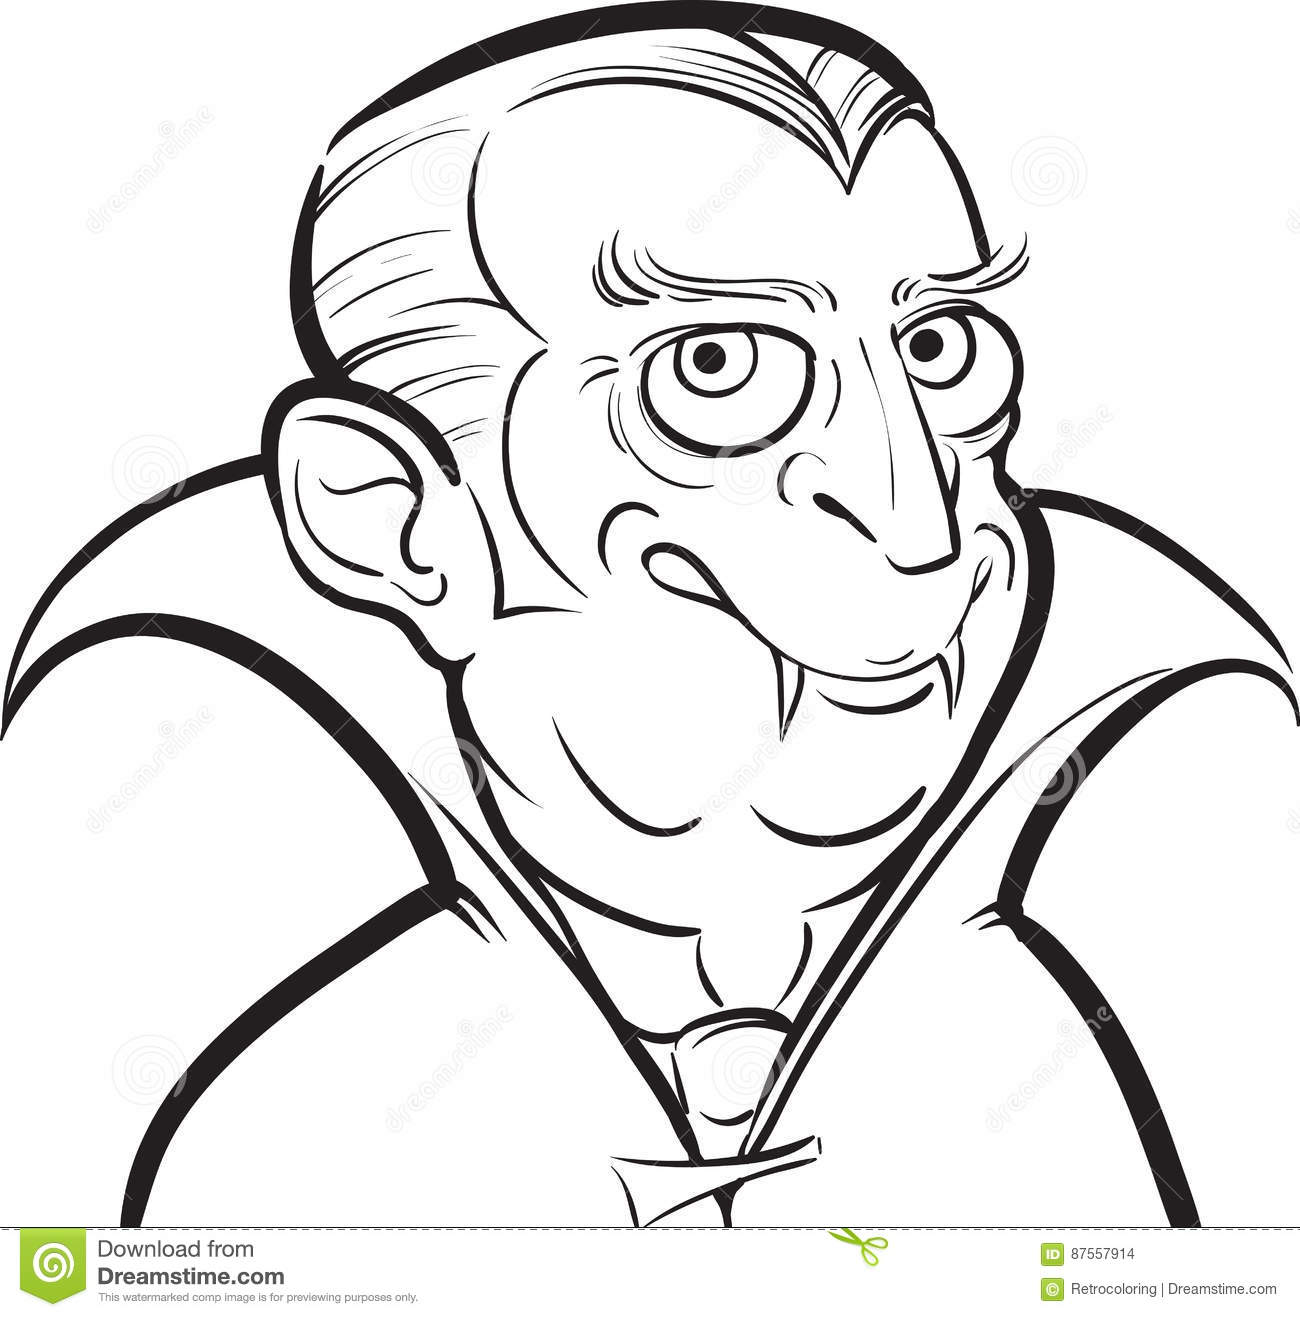 cartoon character halloween coloring pages - photo#23